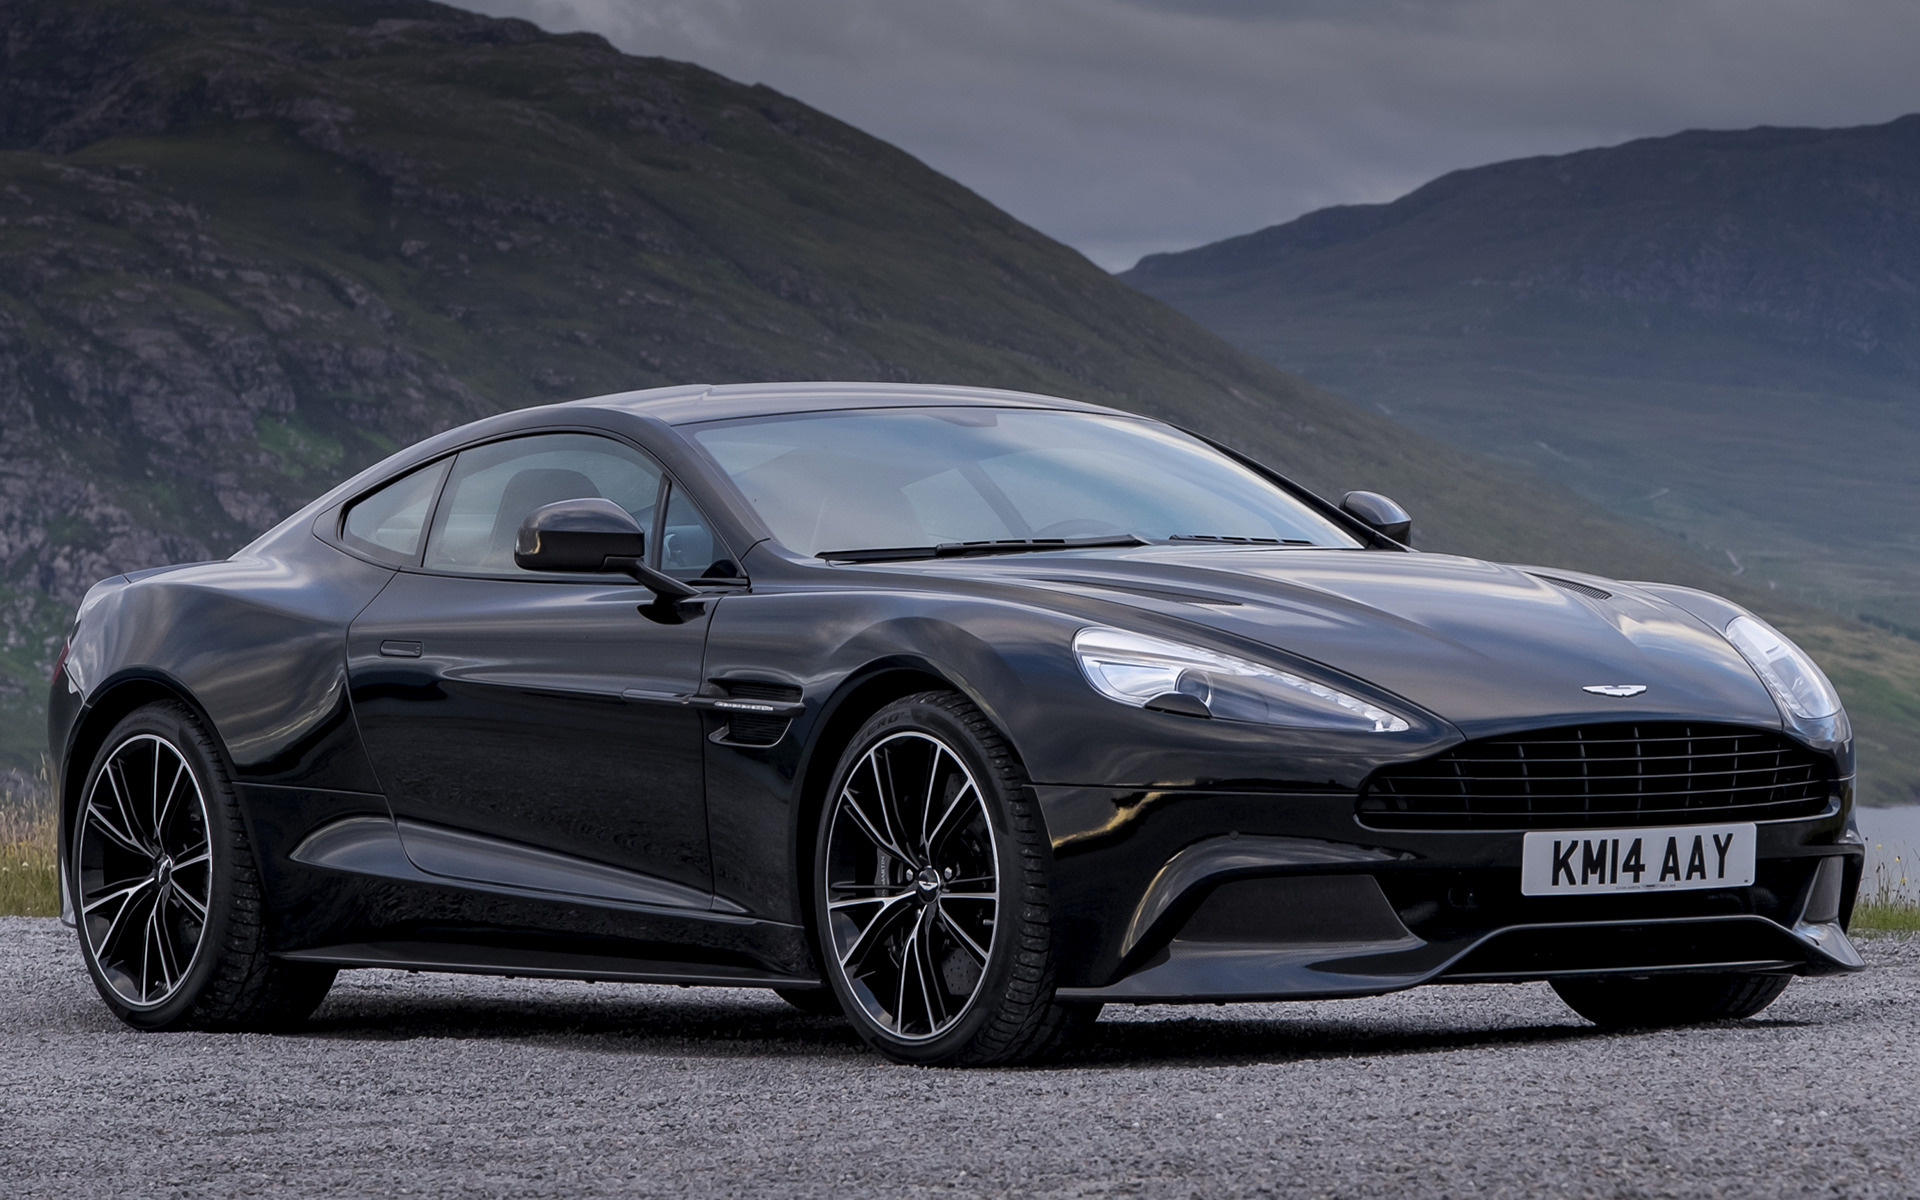 Aston Martin Vanquish Carbon Black Car Wallpaper